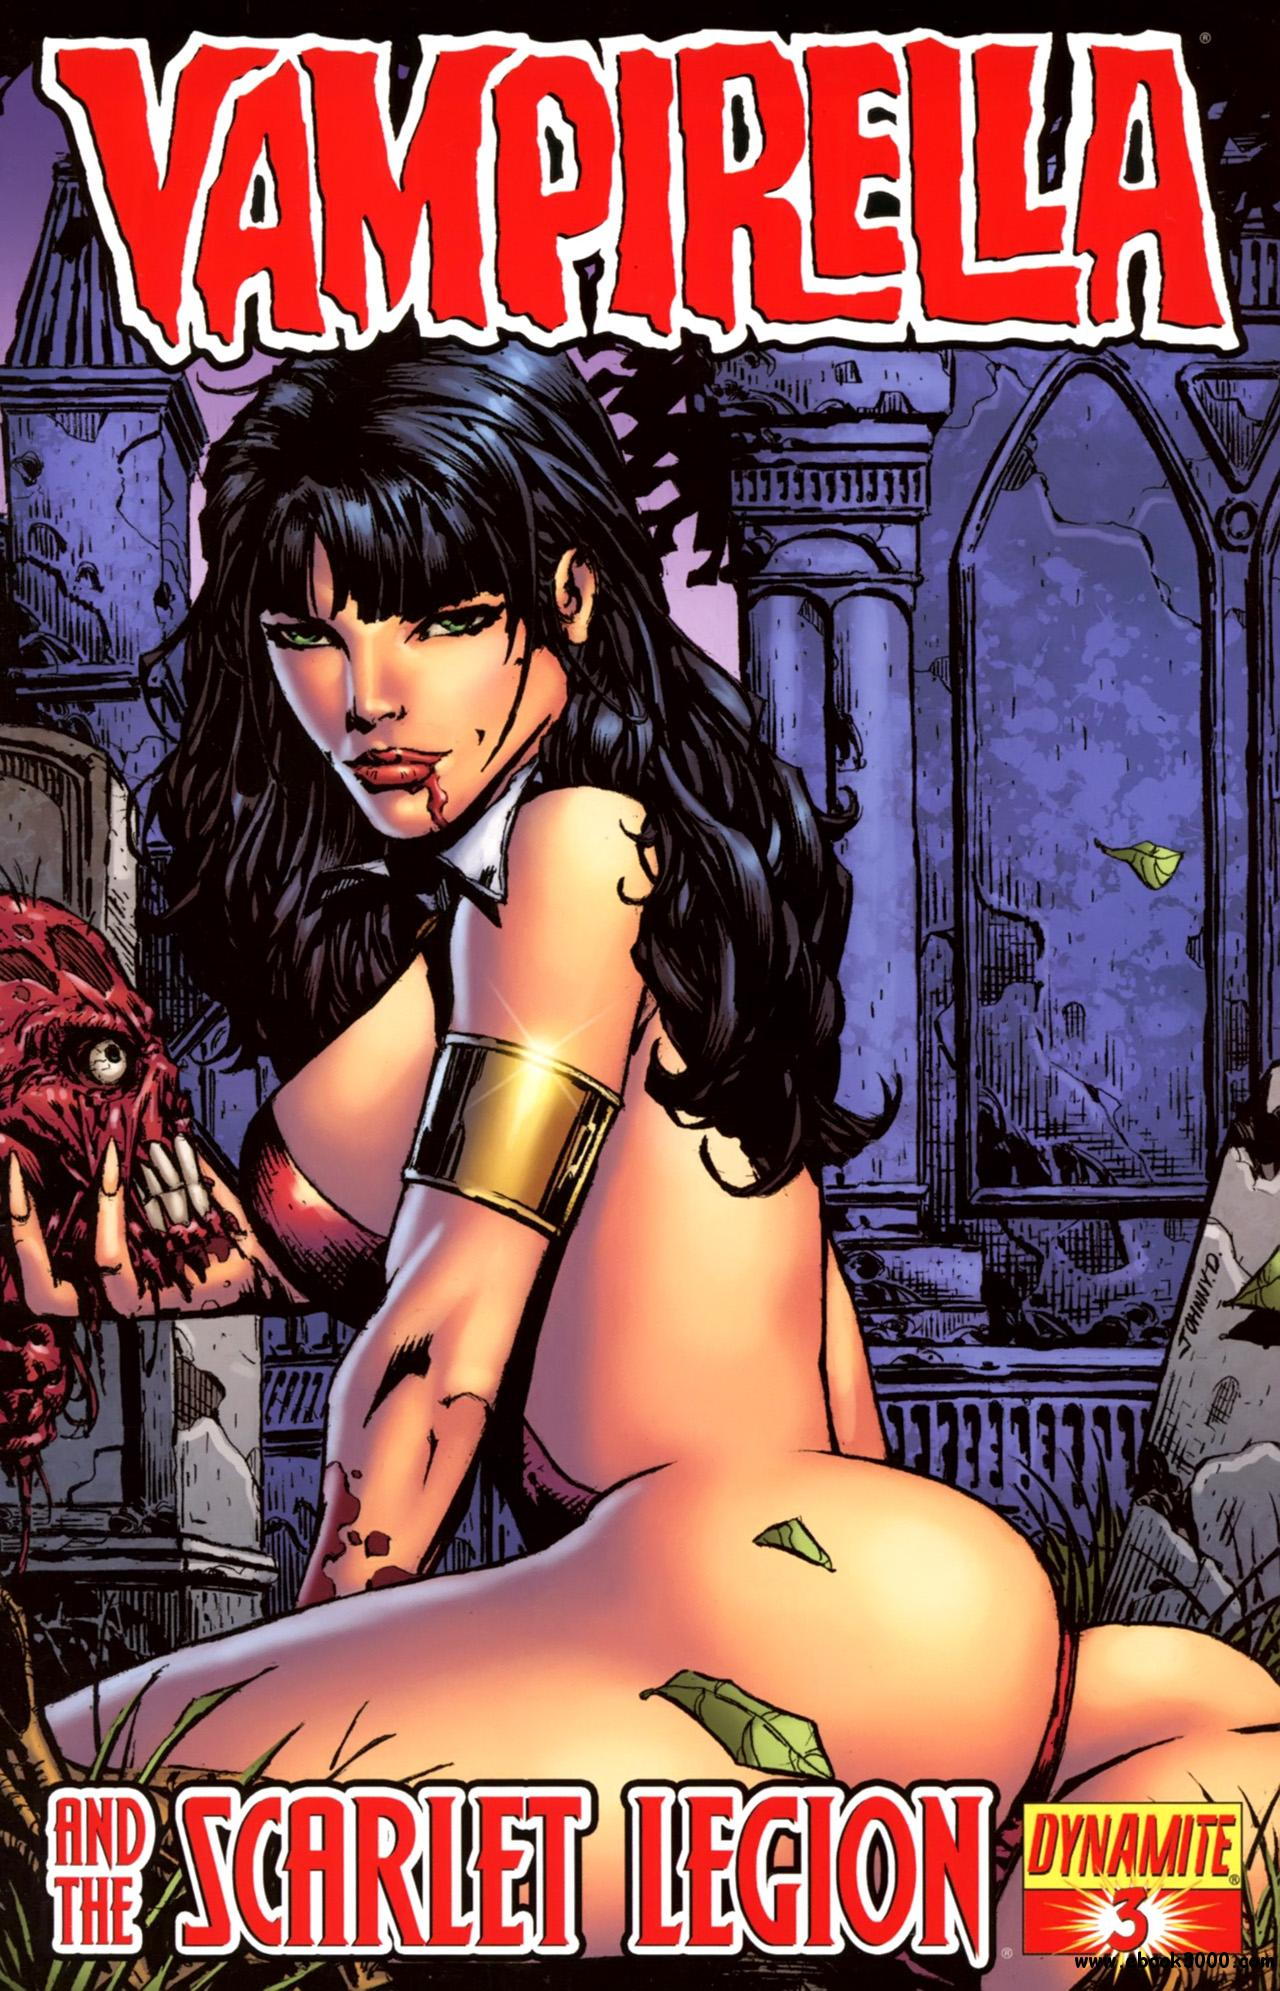 Vampirella And The Scarlet Legion #3 (2011) free download